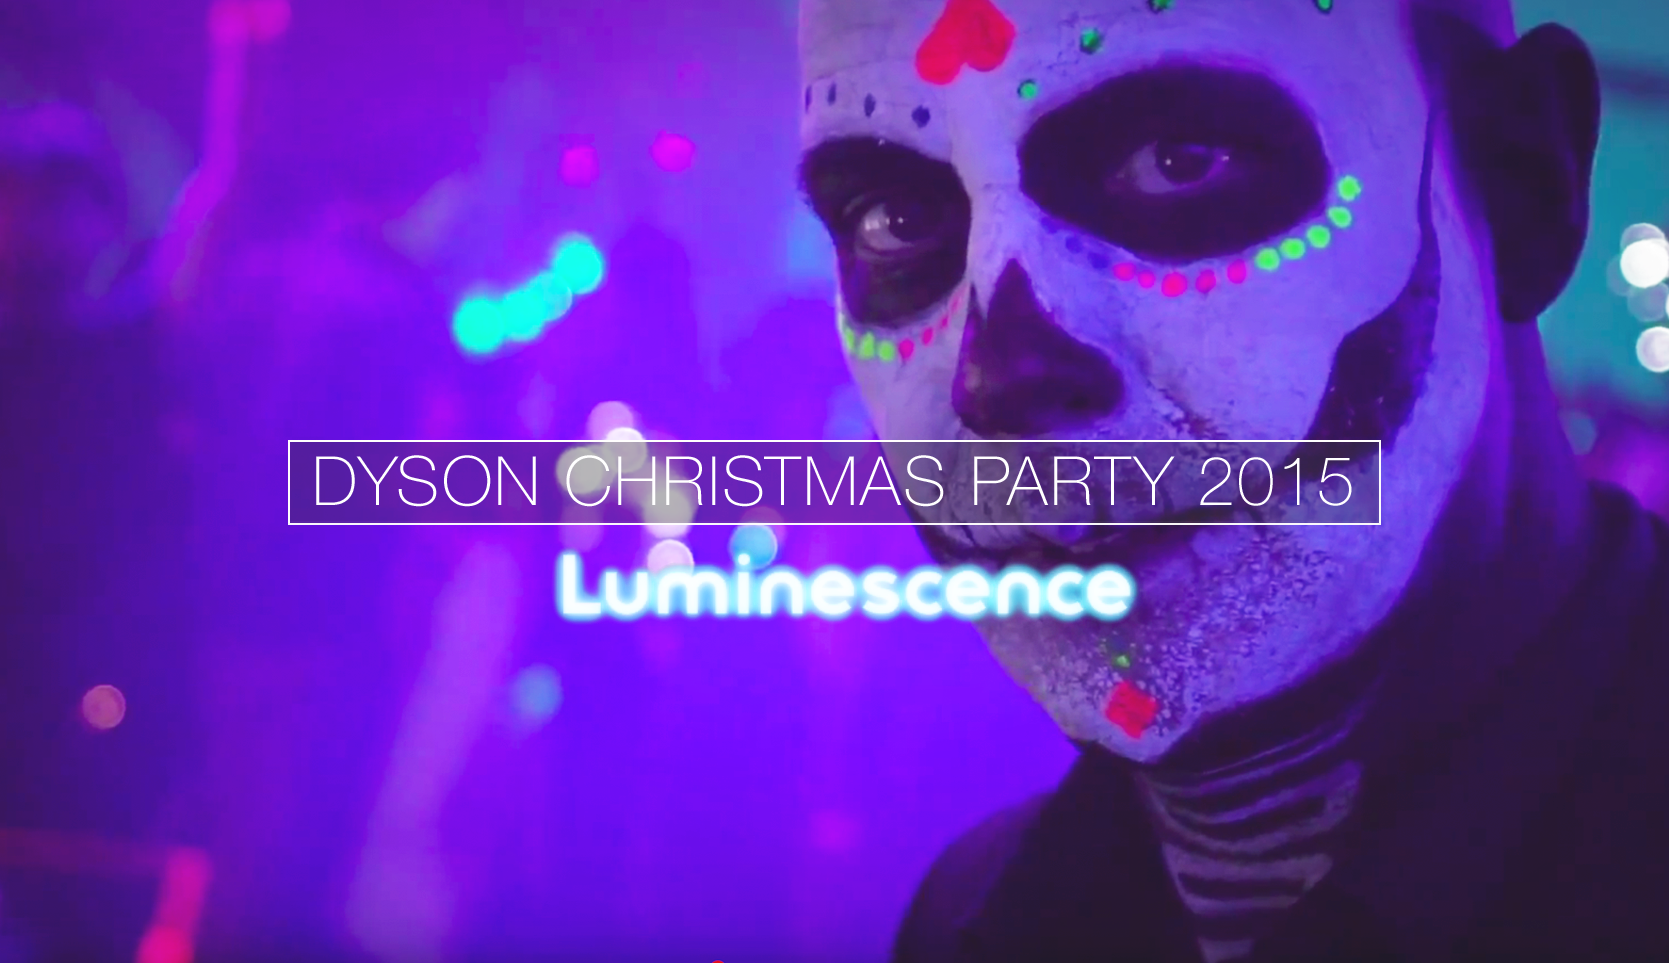 Dyson Christmas Party 'Luminescence' 2015